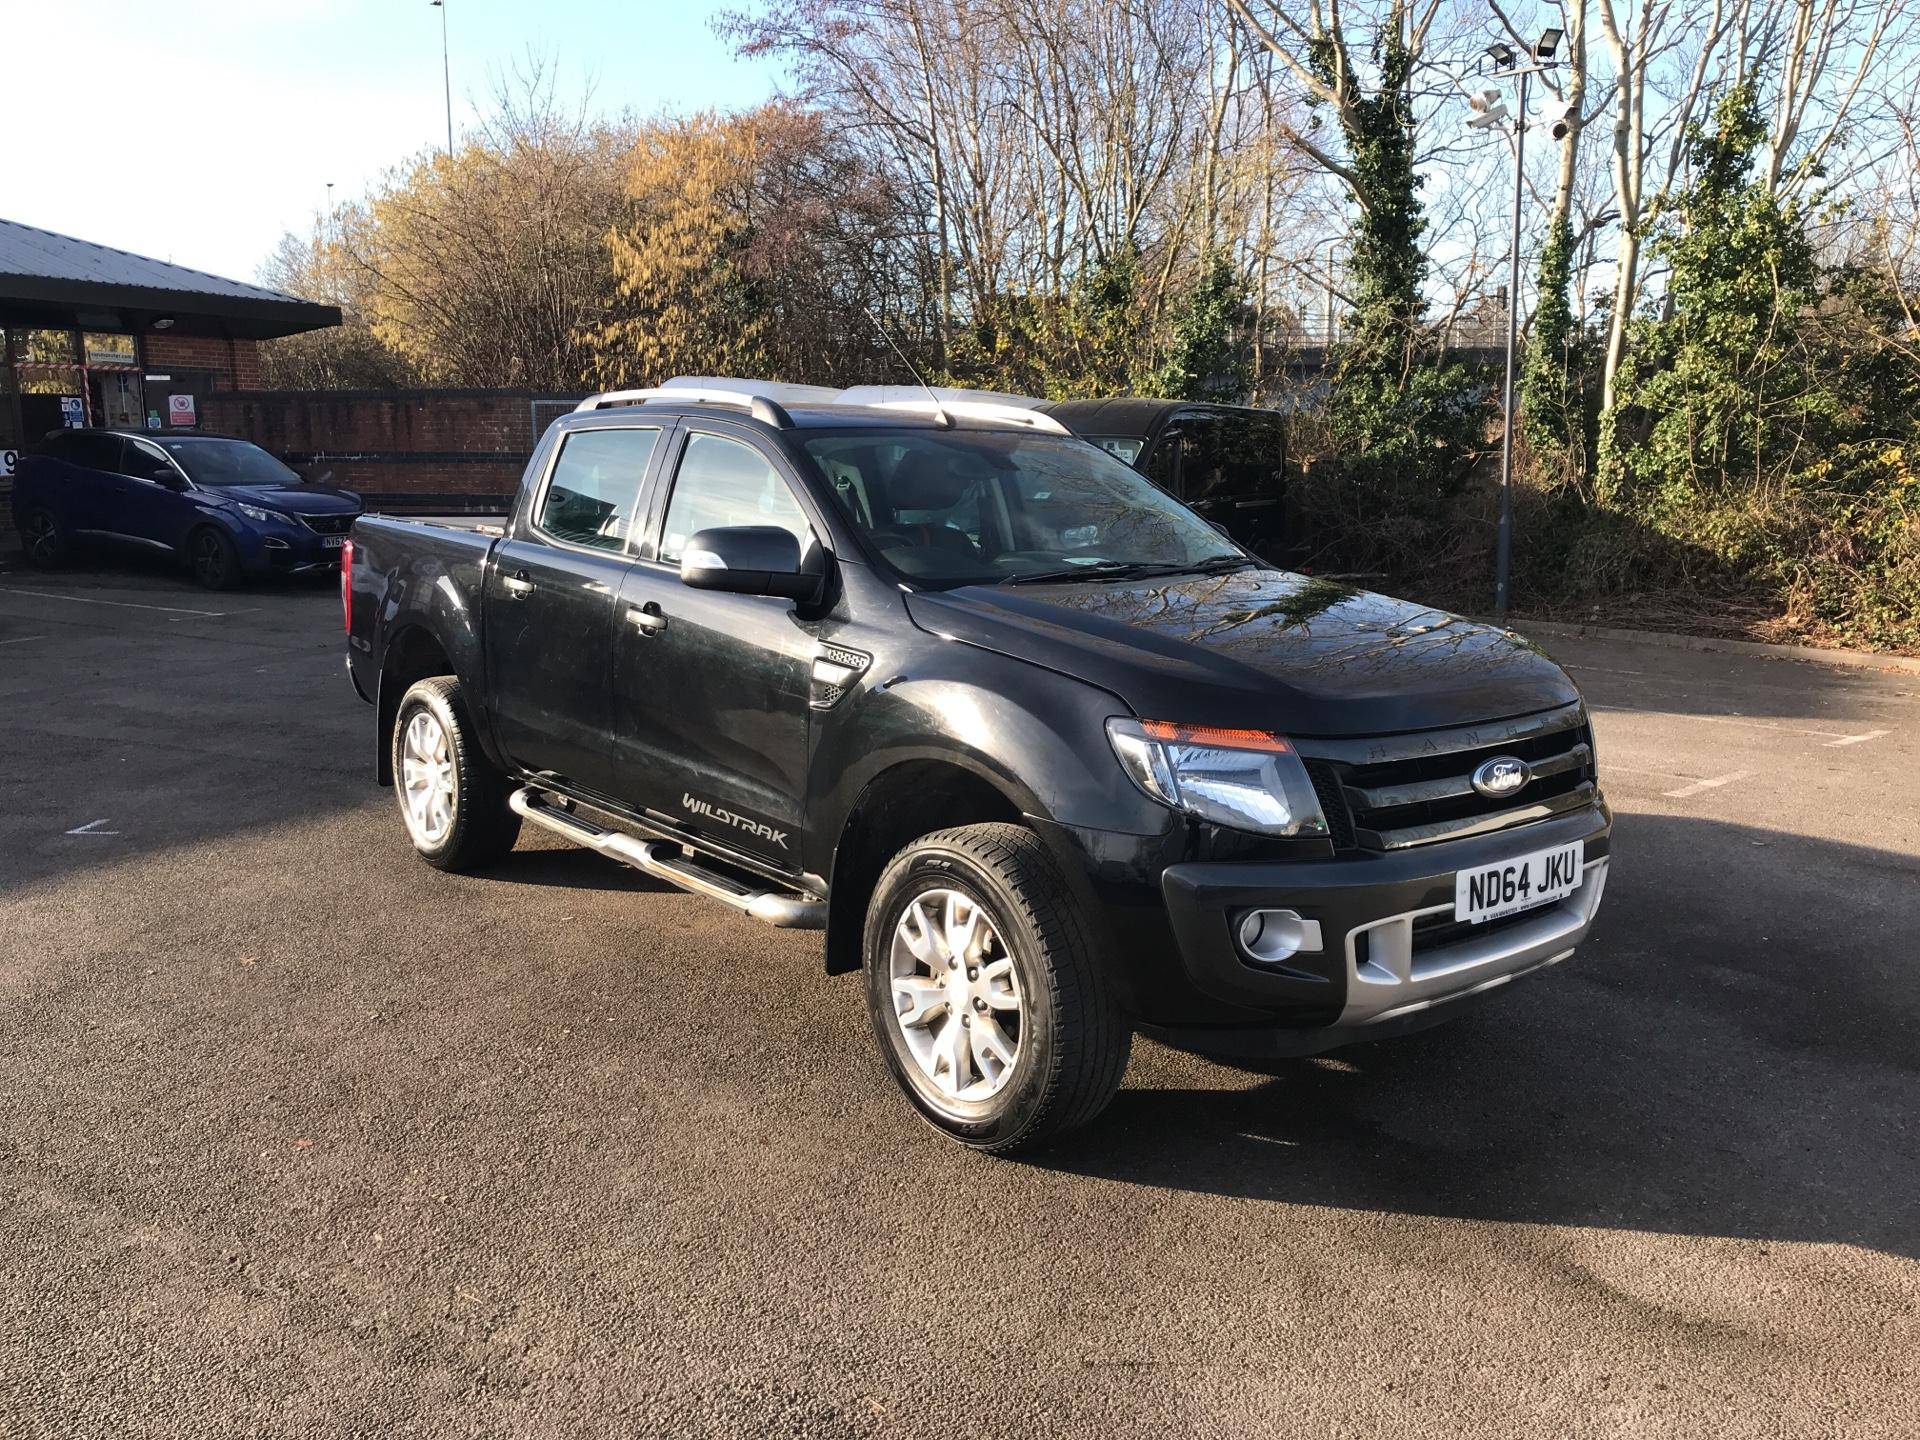 2015 Ford Ranger Double Cab Pick Up Wildtrak 3.2 4WD EURO 5 *VALUE RANGE VEHICLE - CONDITION REFLECTED IN PRICE* (ND64JKU)